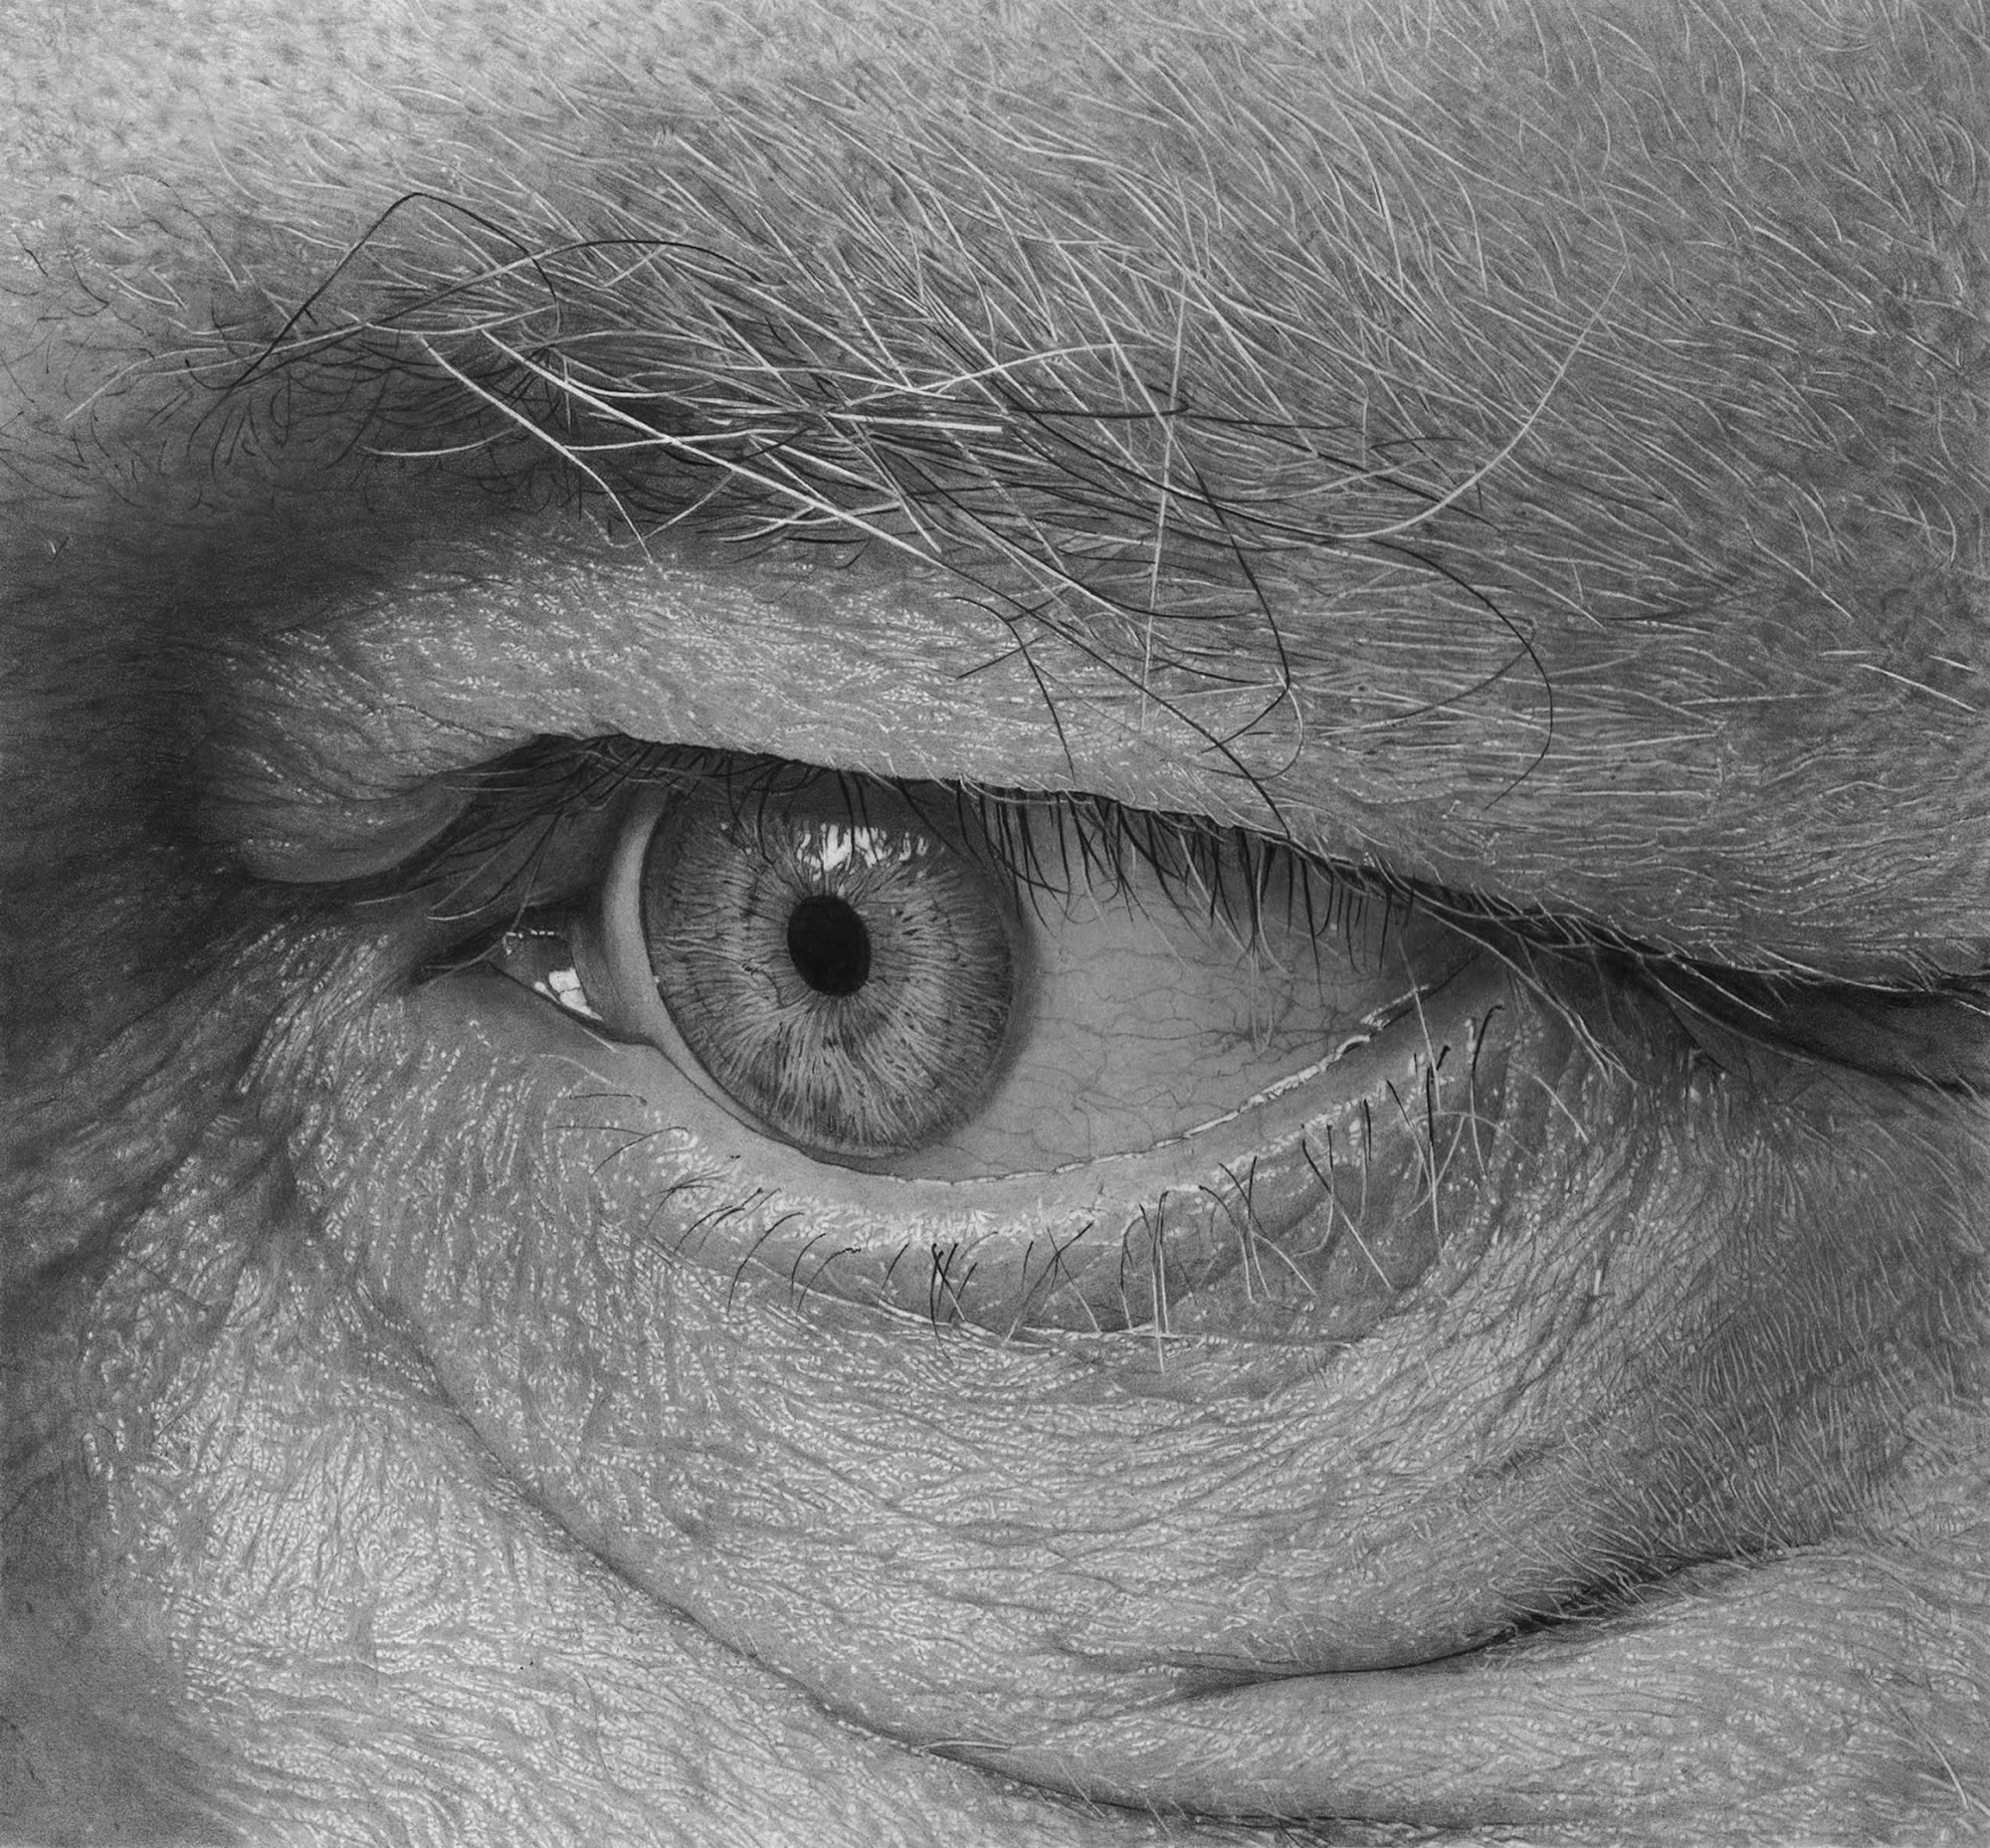 hyperrealistic eye drawing